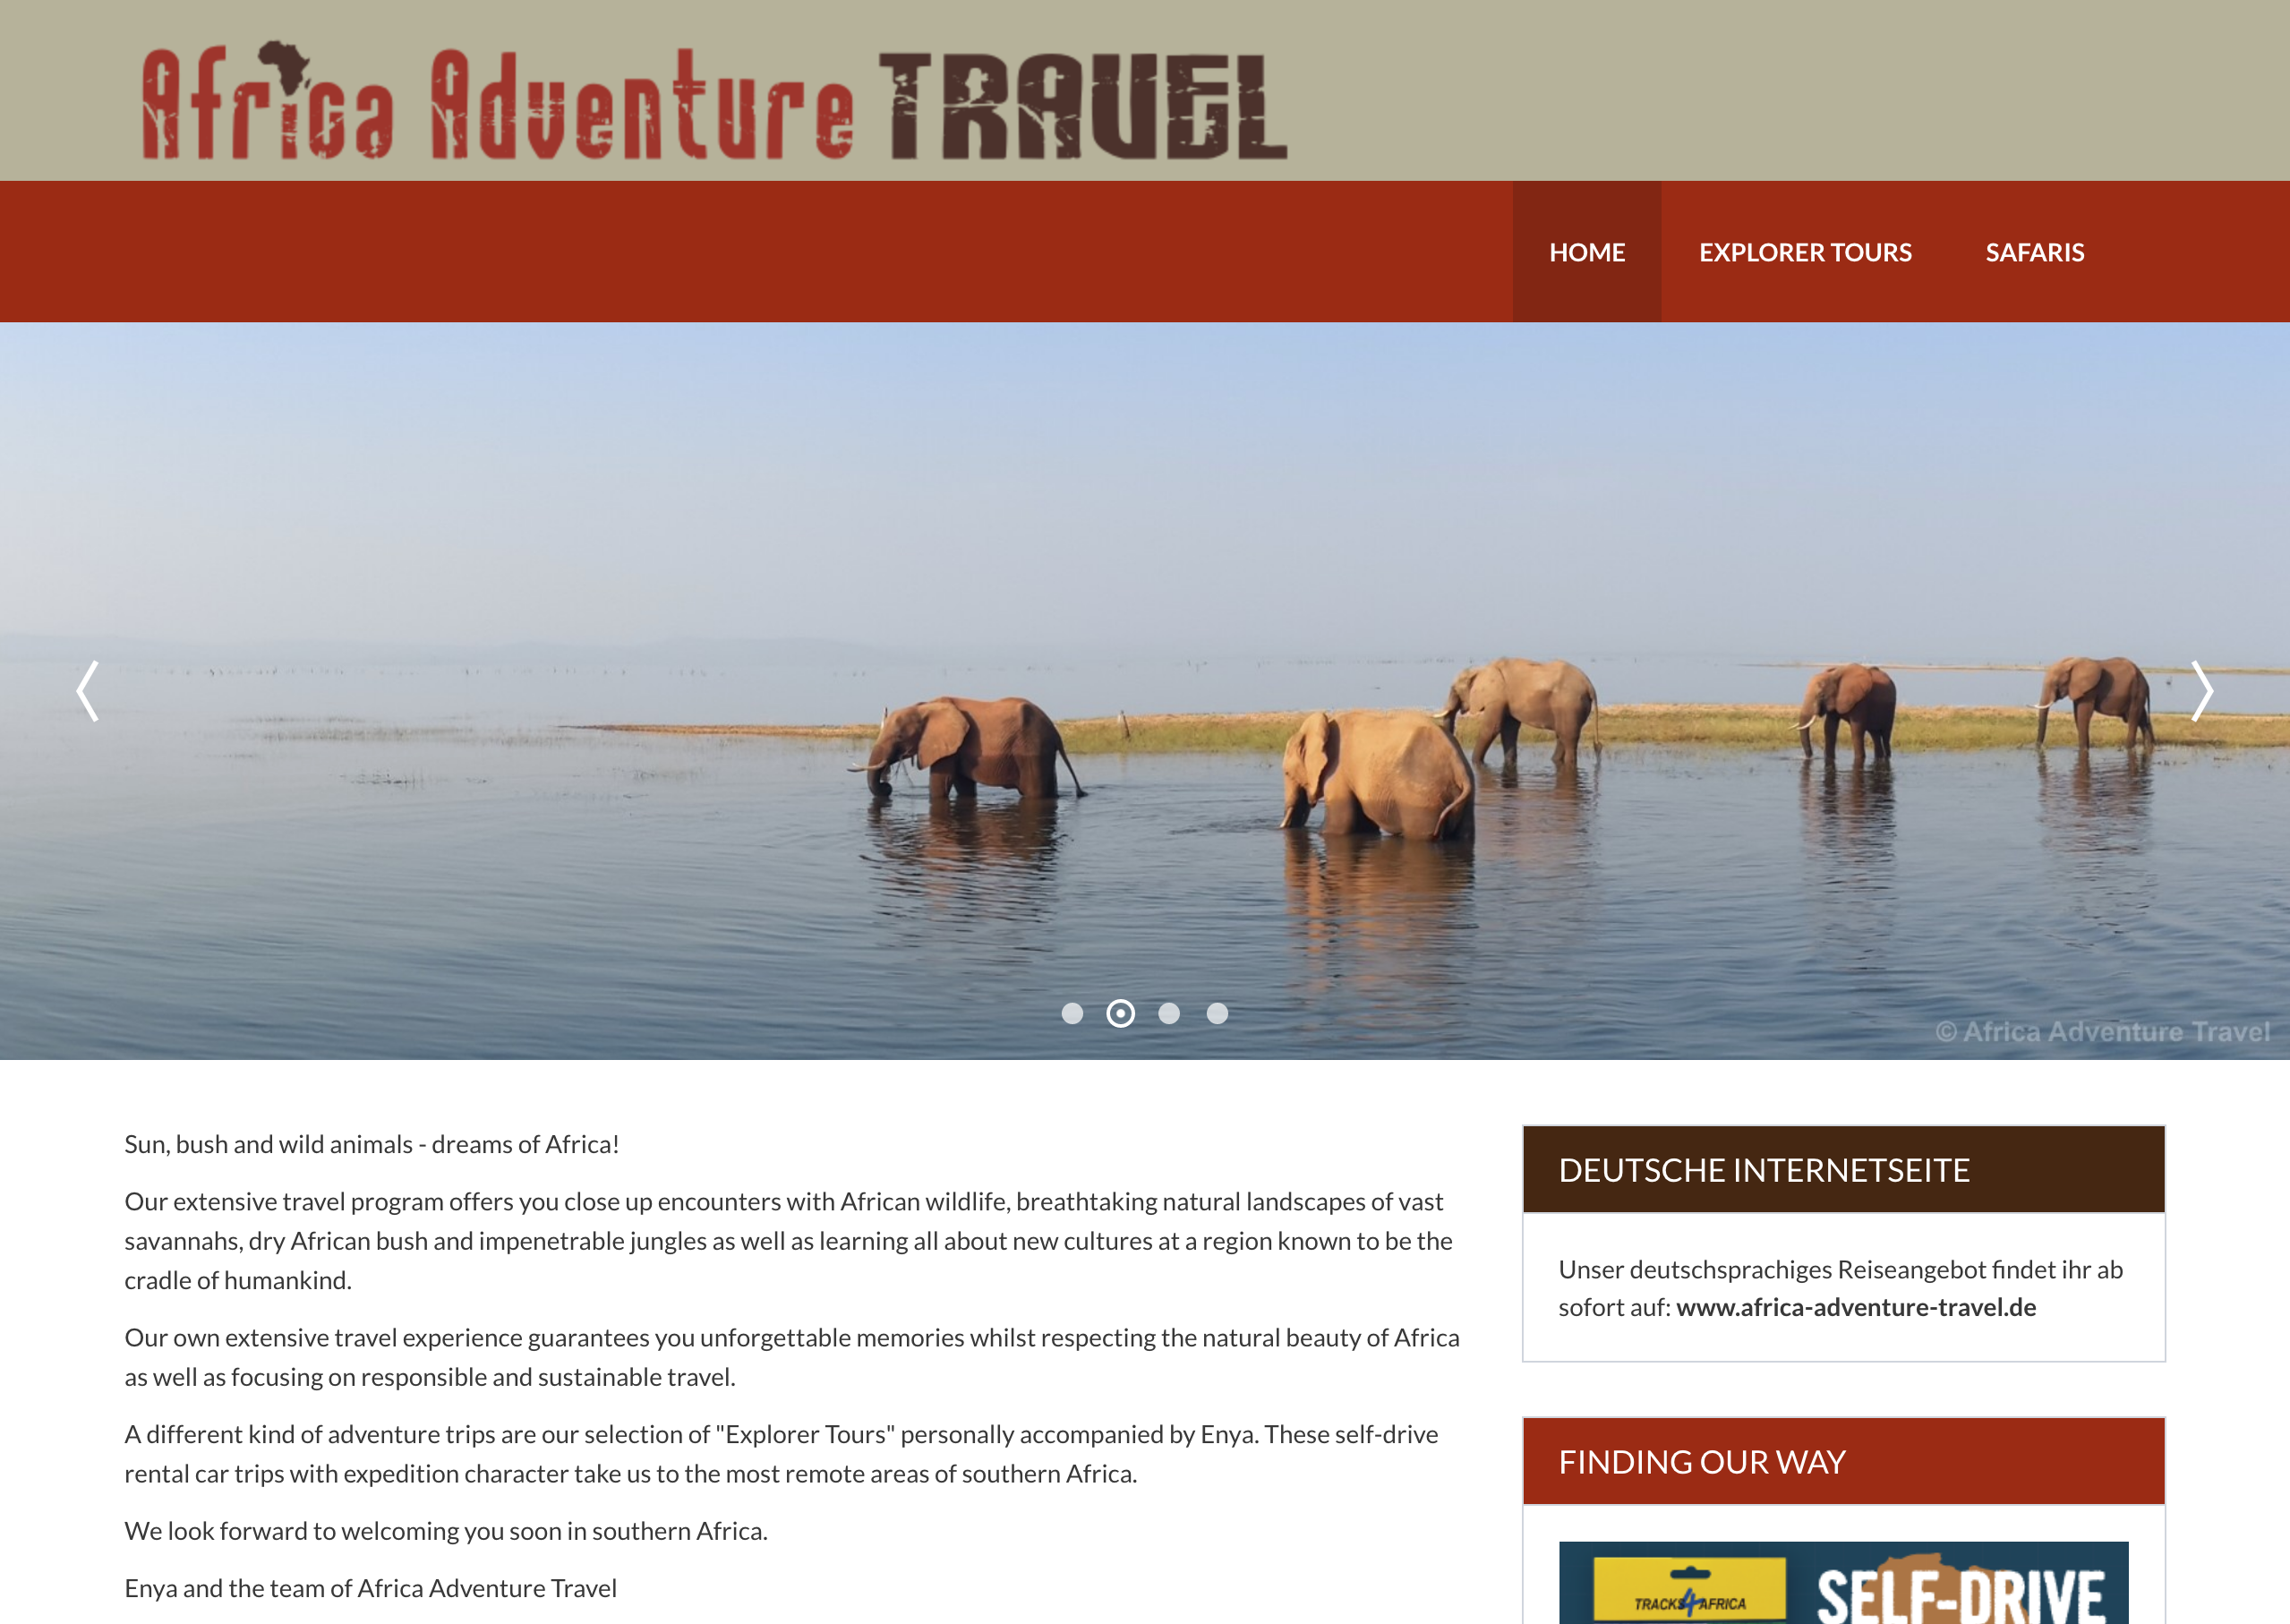 Africa Adventure Travel: Discovery, Diversity, and